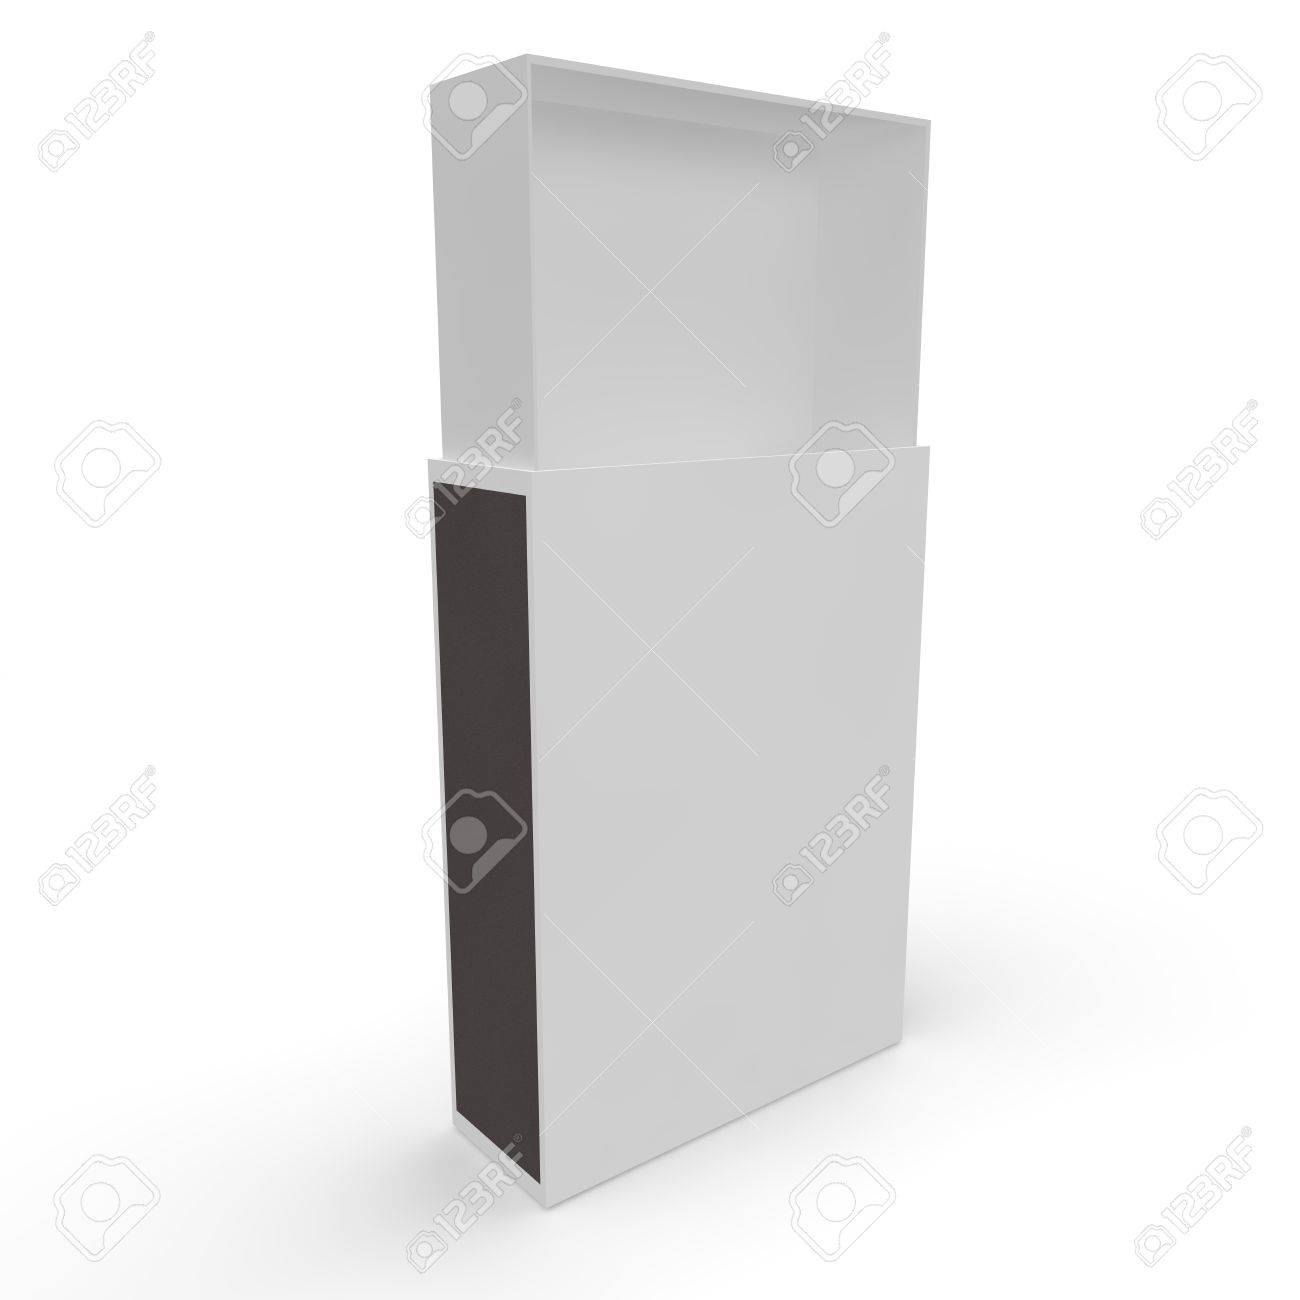 Template - Empty Matchbox. Isolated White Background Stock Photo ...